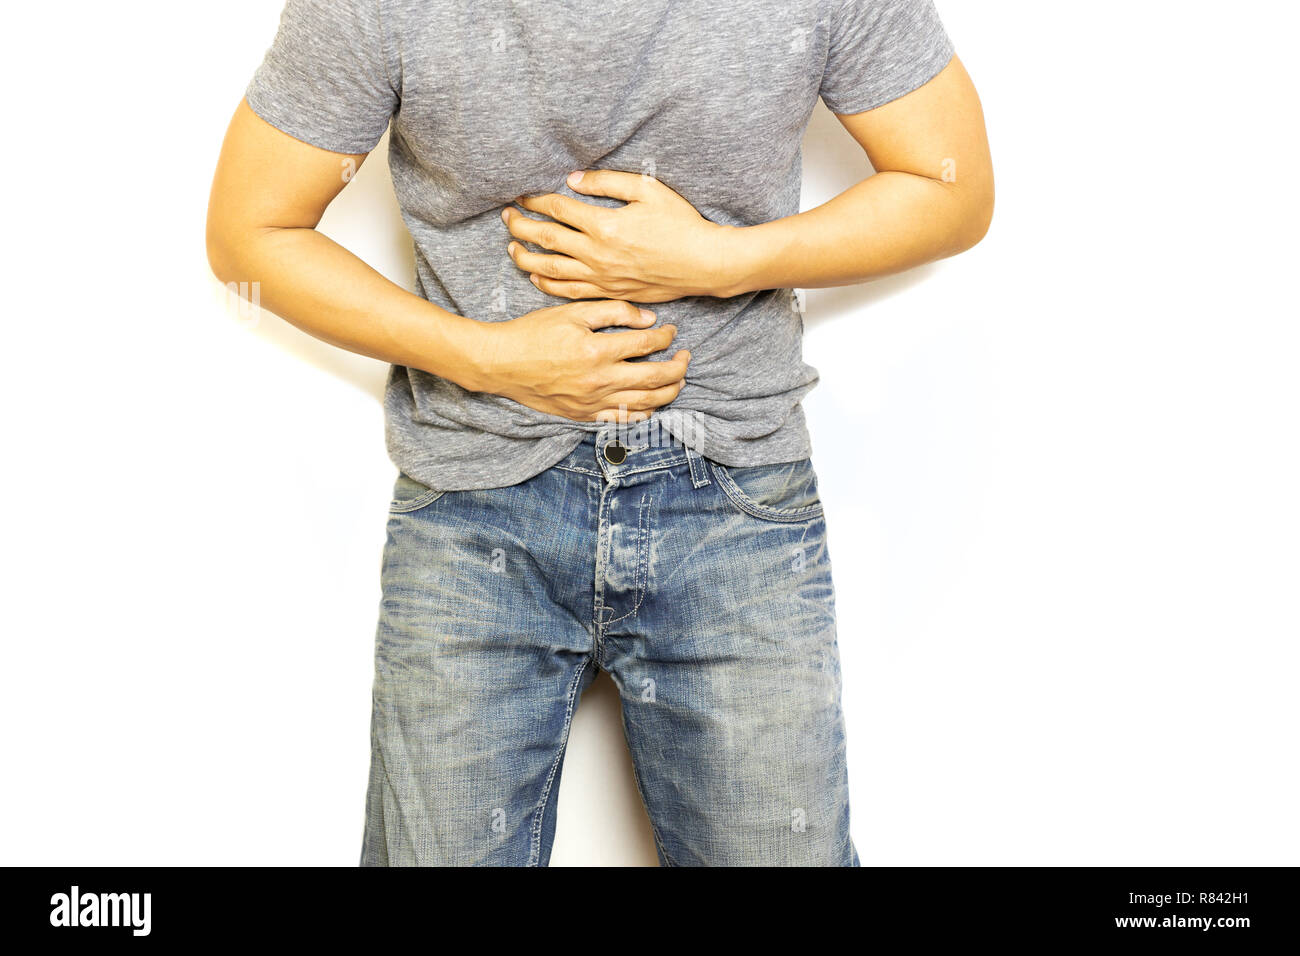 Man with stomach pain hand holding his aching belly isolated. - Stock Image